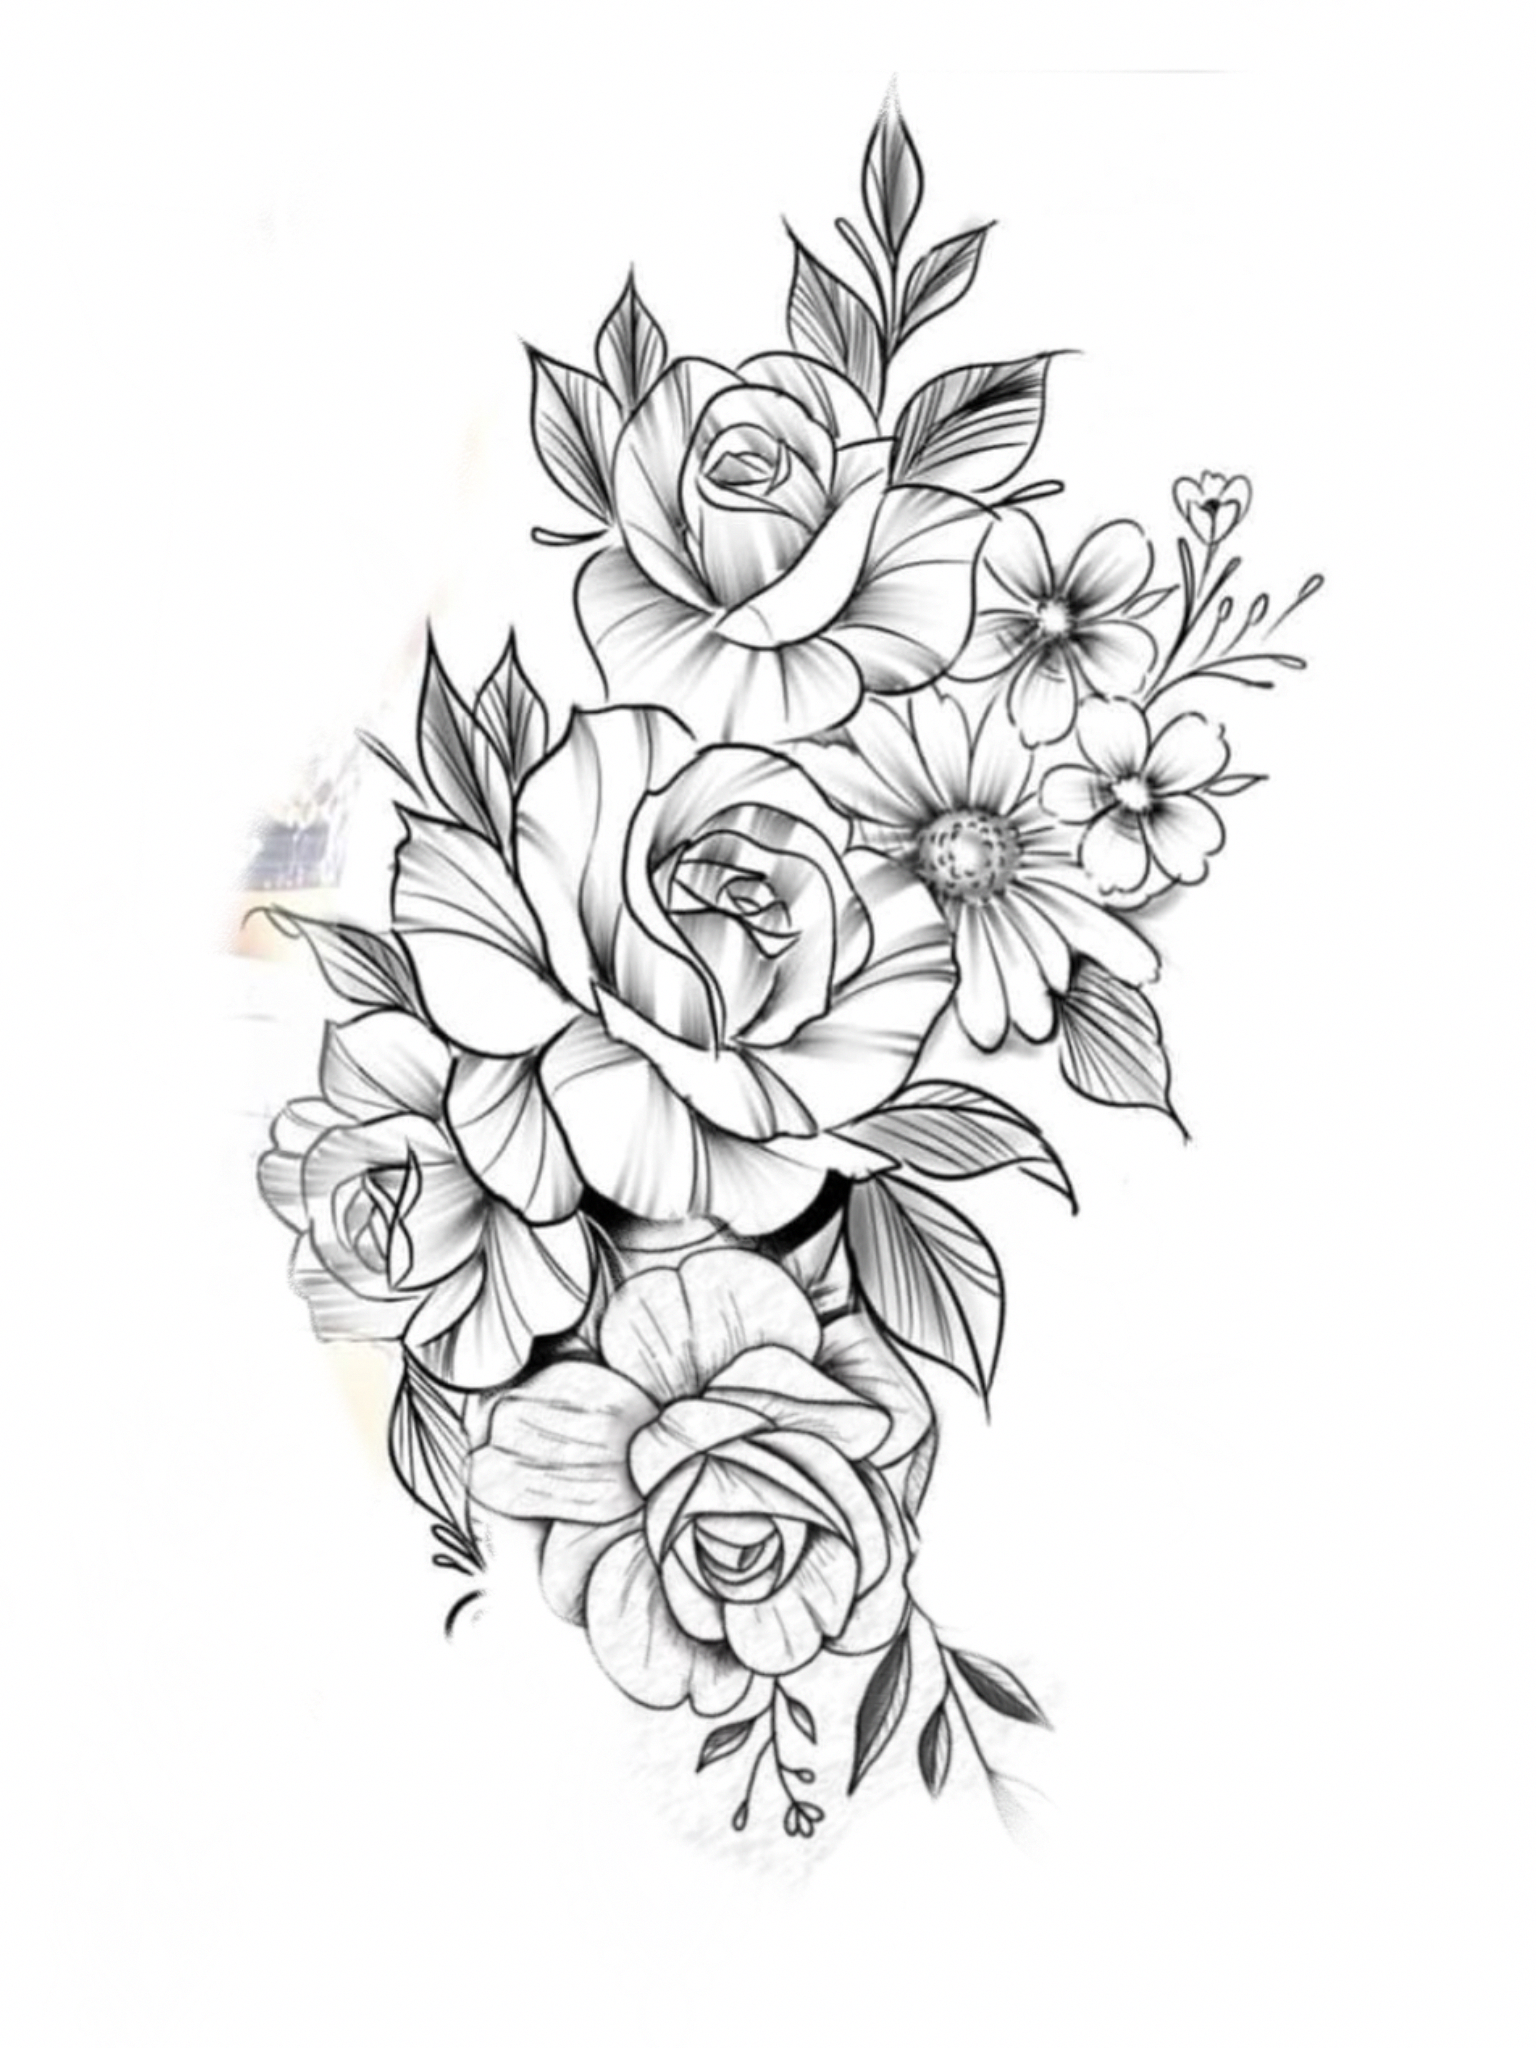 Exceptional tattoos for girls  are readily available on our site. Have a look and you wont be sorry you did. #tattoosforgirls